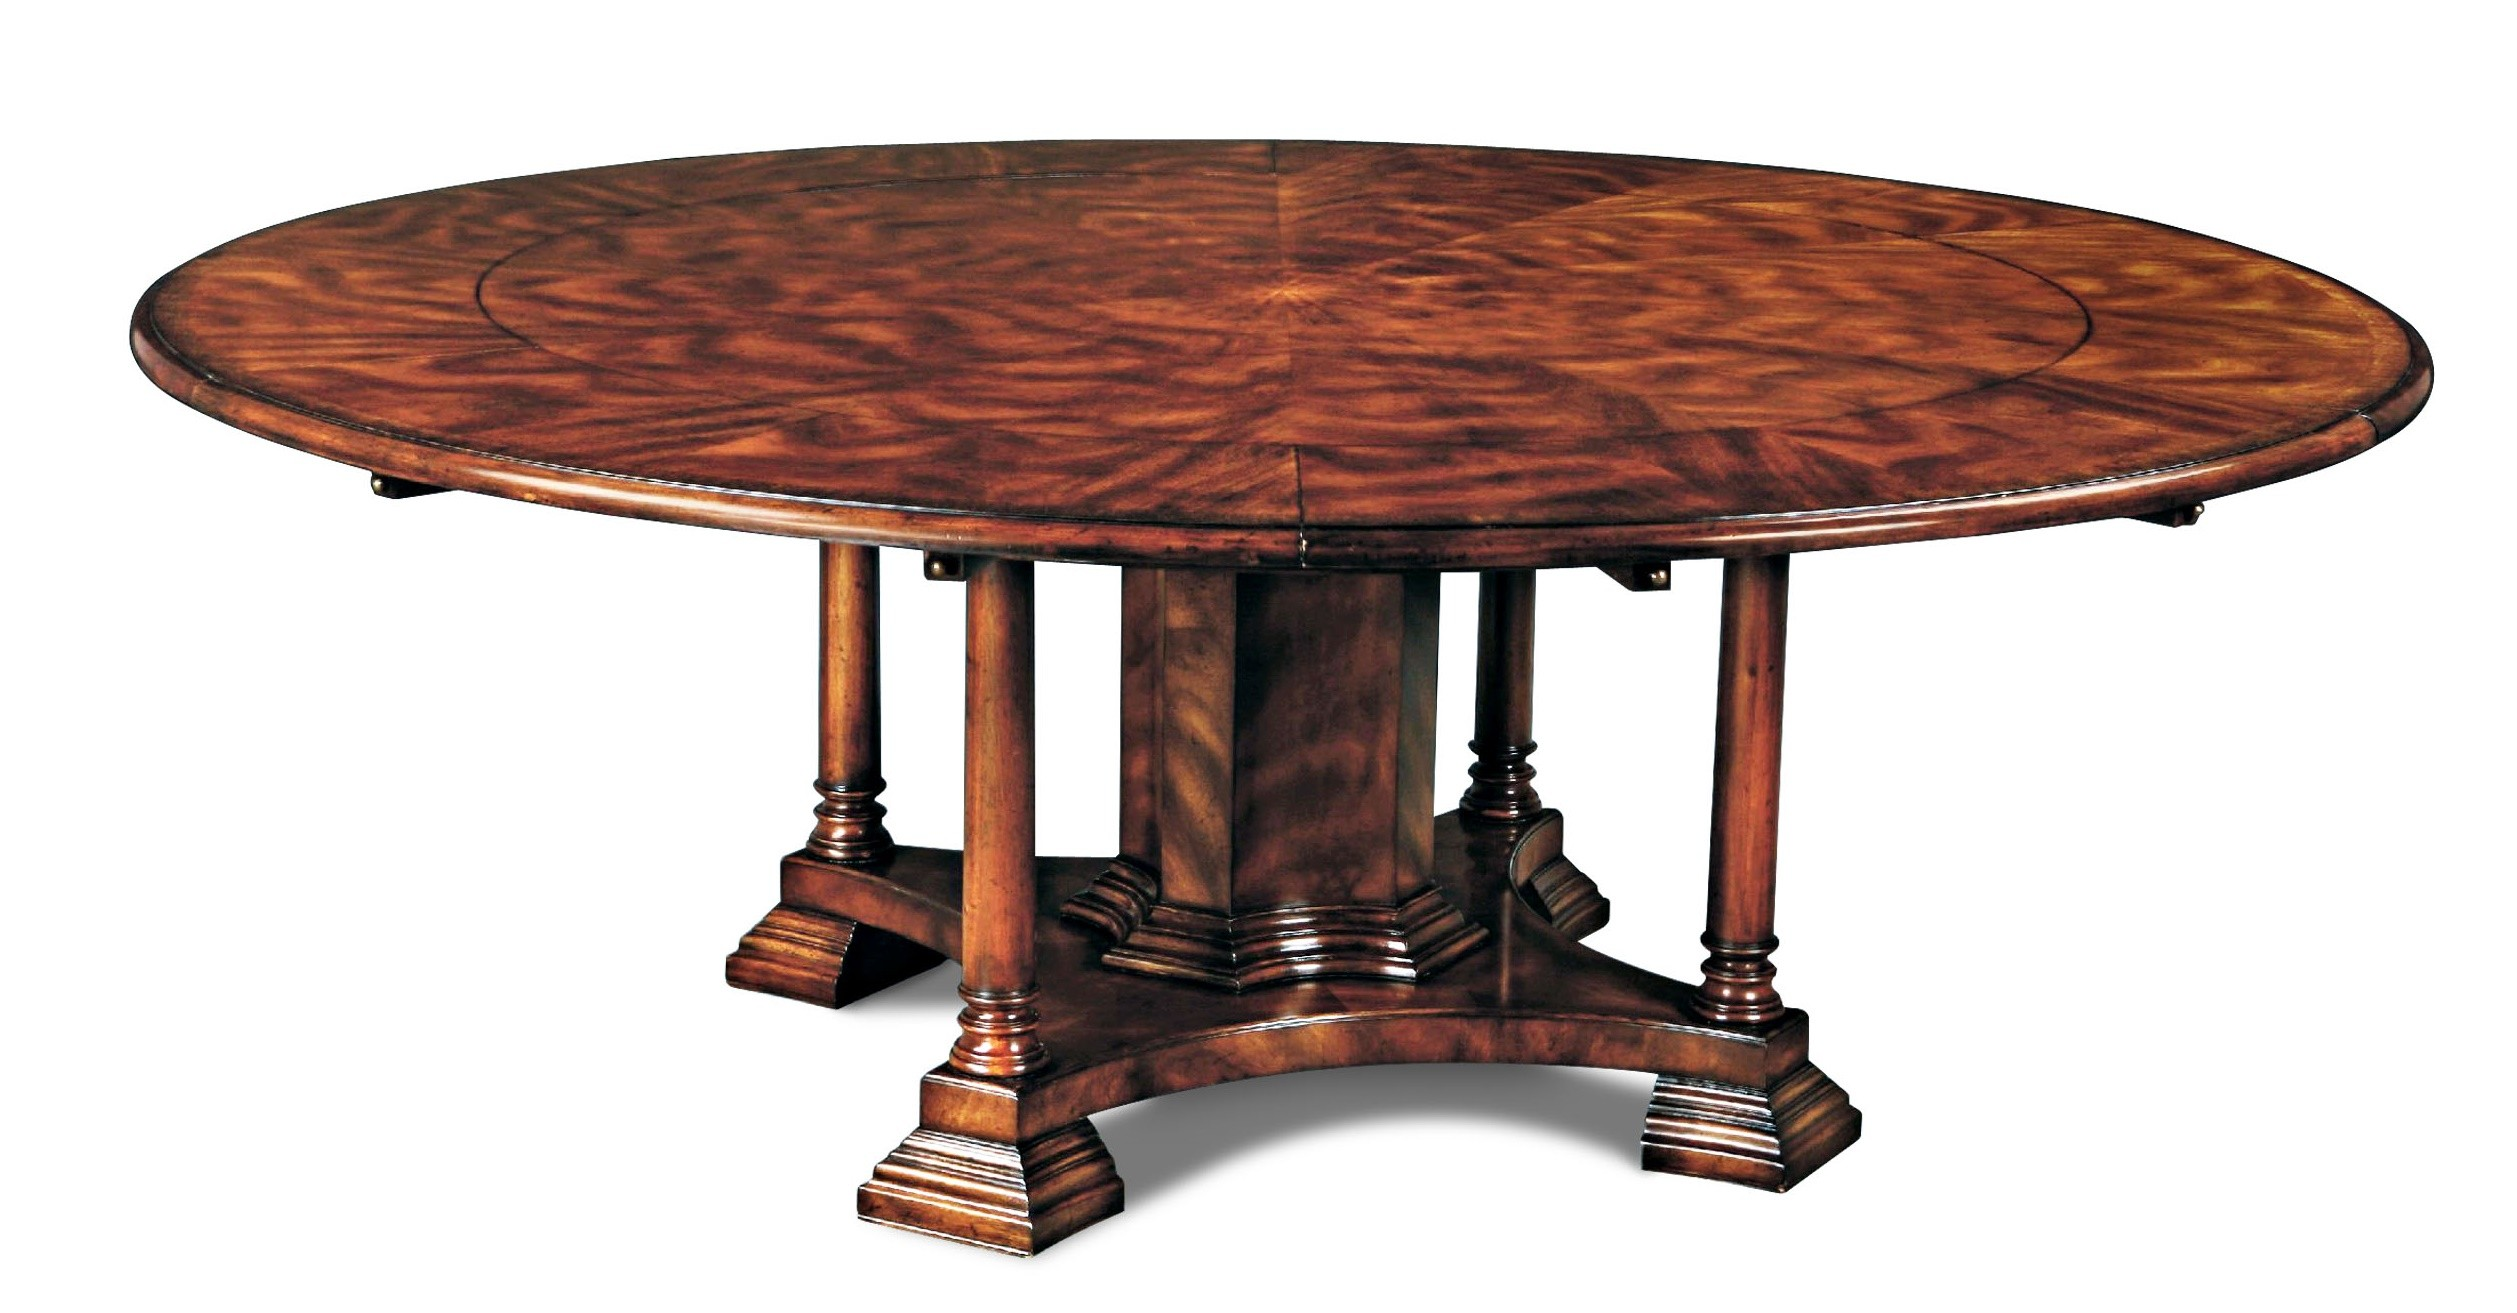 12 luxury round dining table for Luxury dinner table